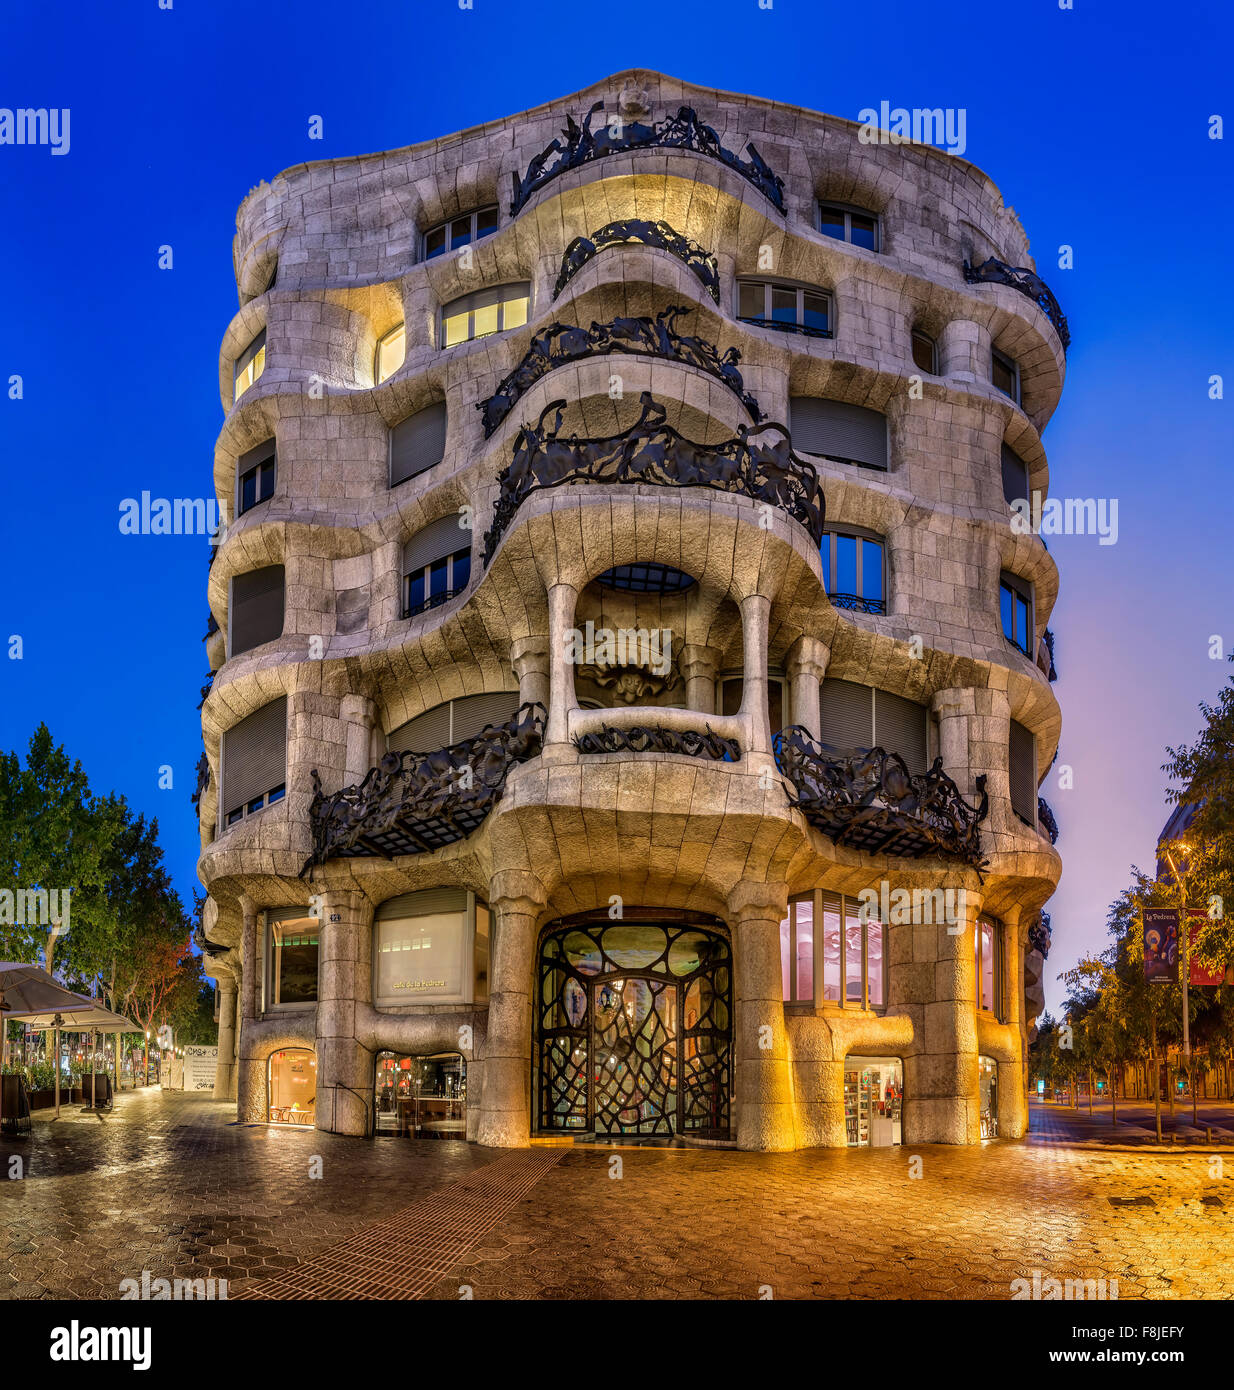 Gaudi stockfotos gaudi bilder alamy - Architekt barcelona ...